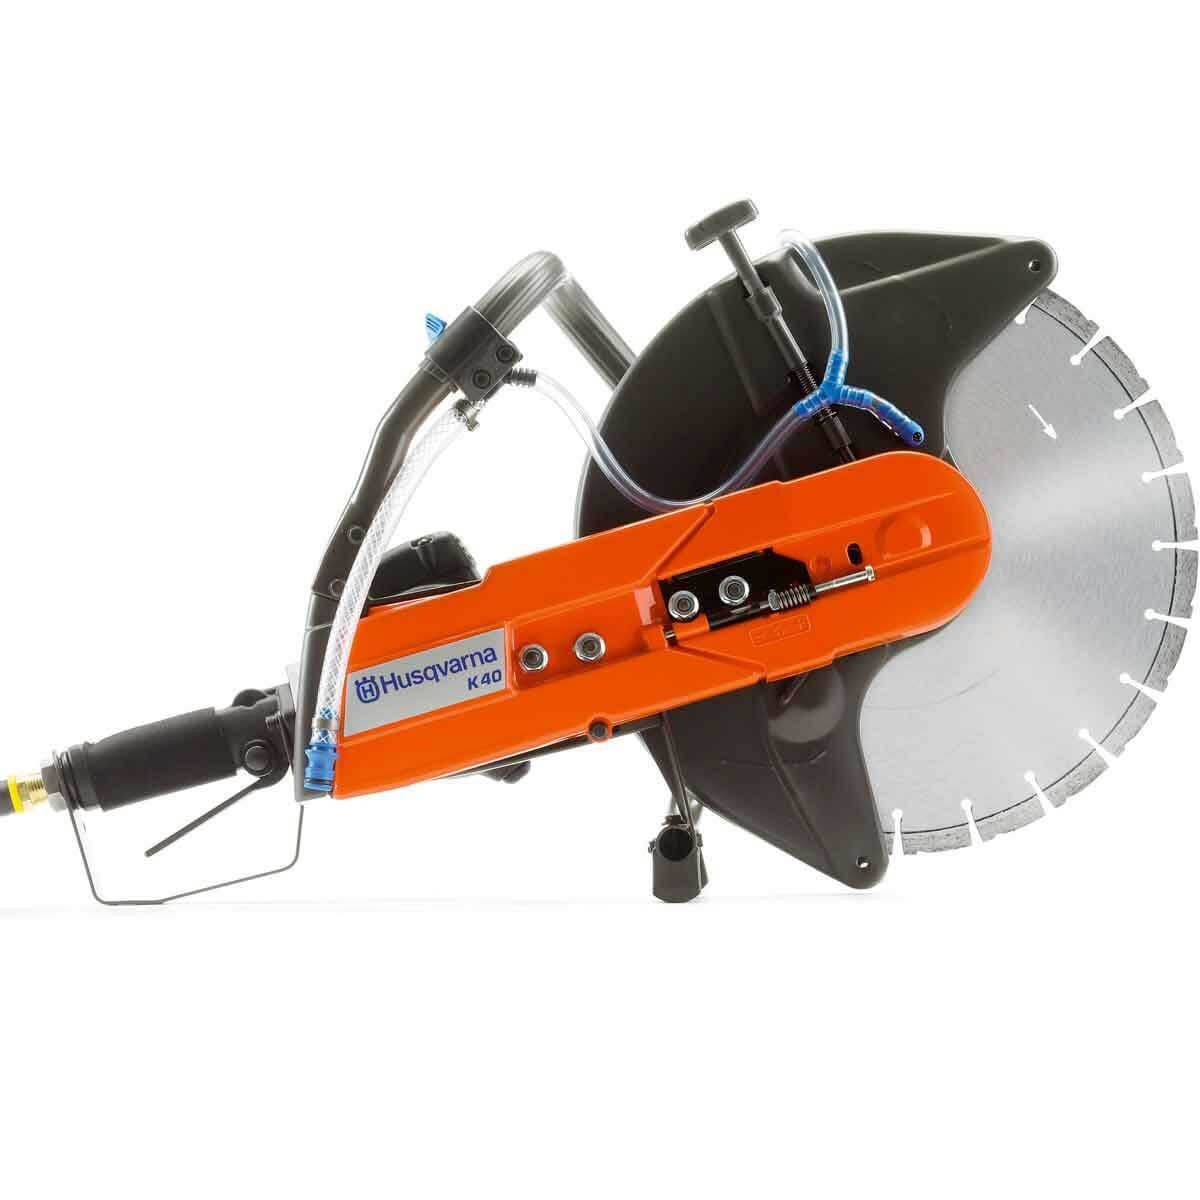 Husqvarna K40 Air Concrete Saw